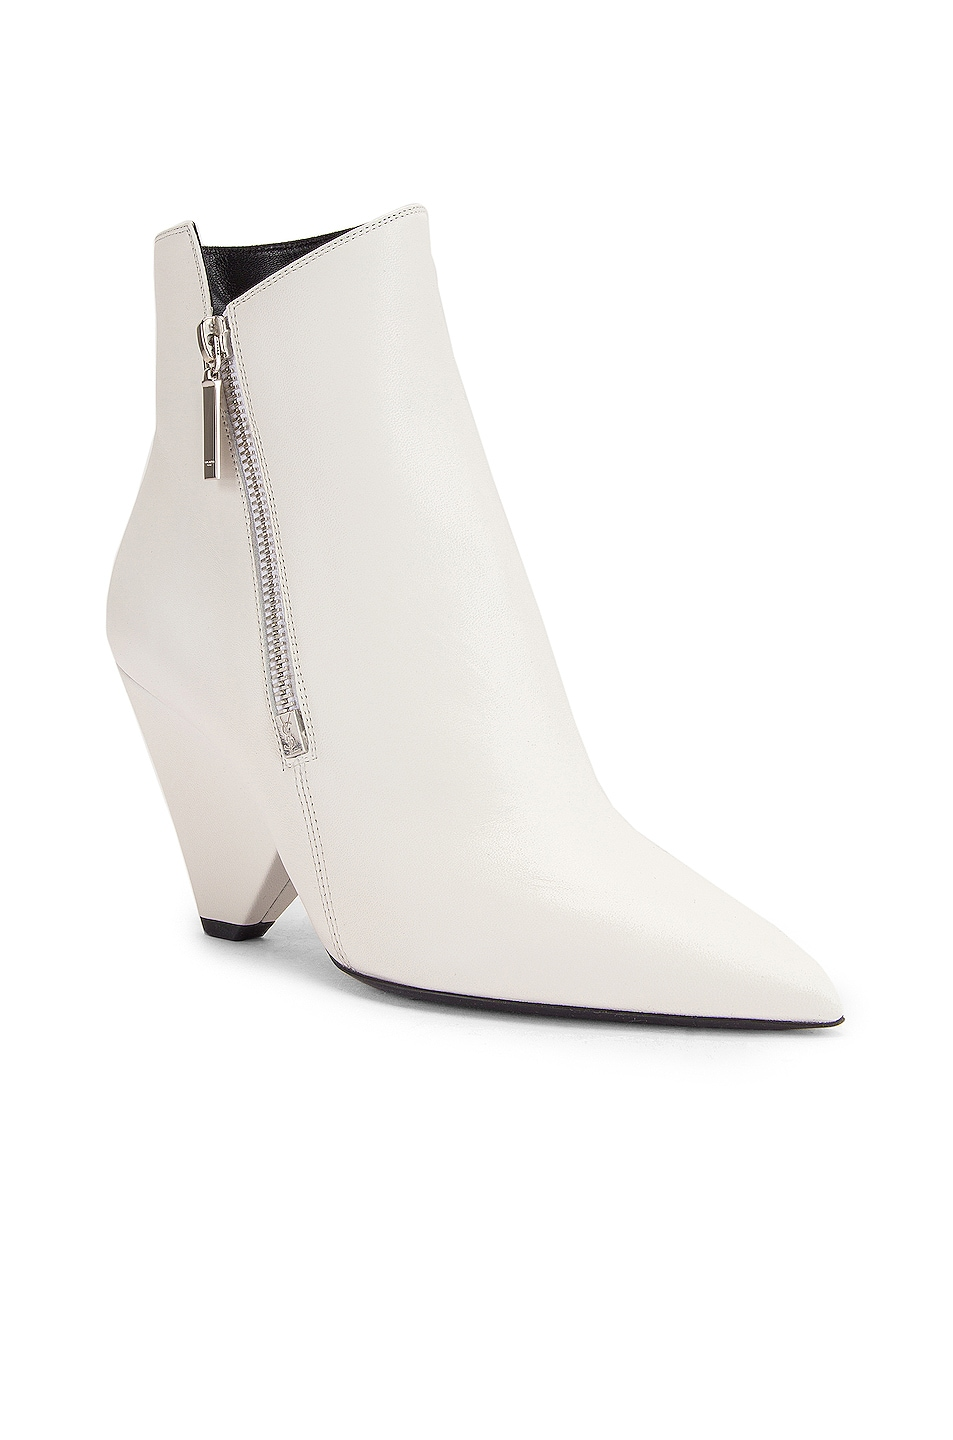 Image 2 of Saint Laurent Niki Zip Booties in White